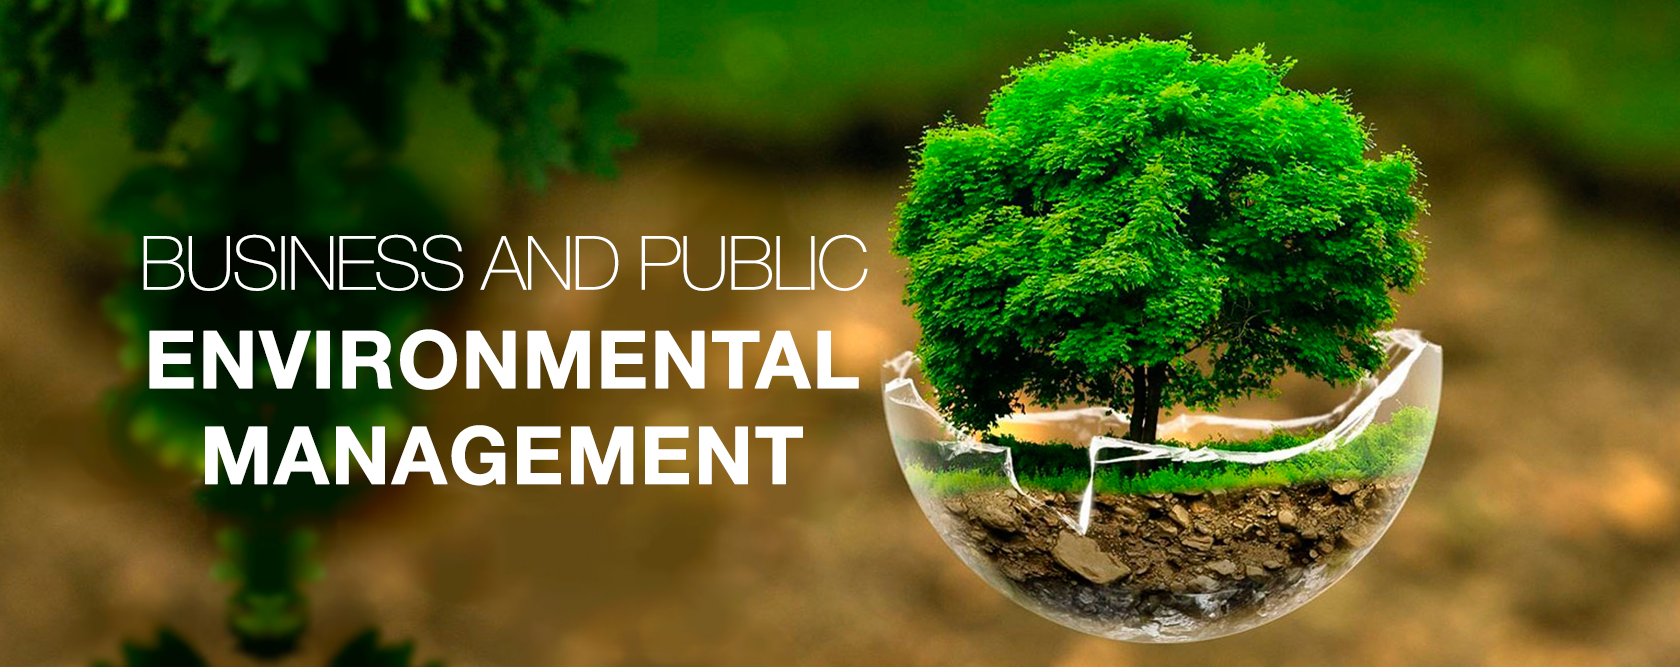 02 03 BusinessAndPublicEnvironmentalManagement destaque